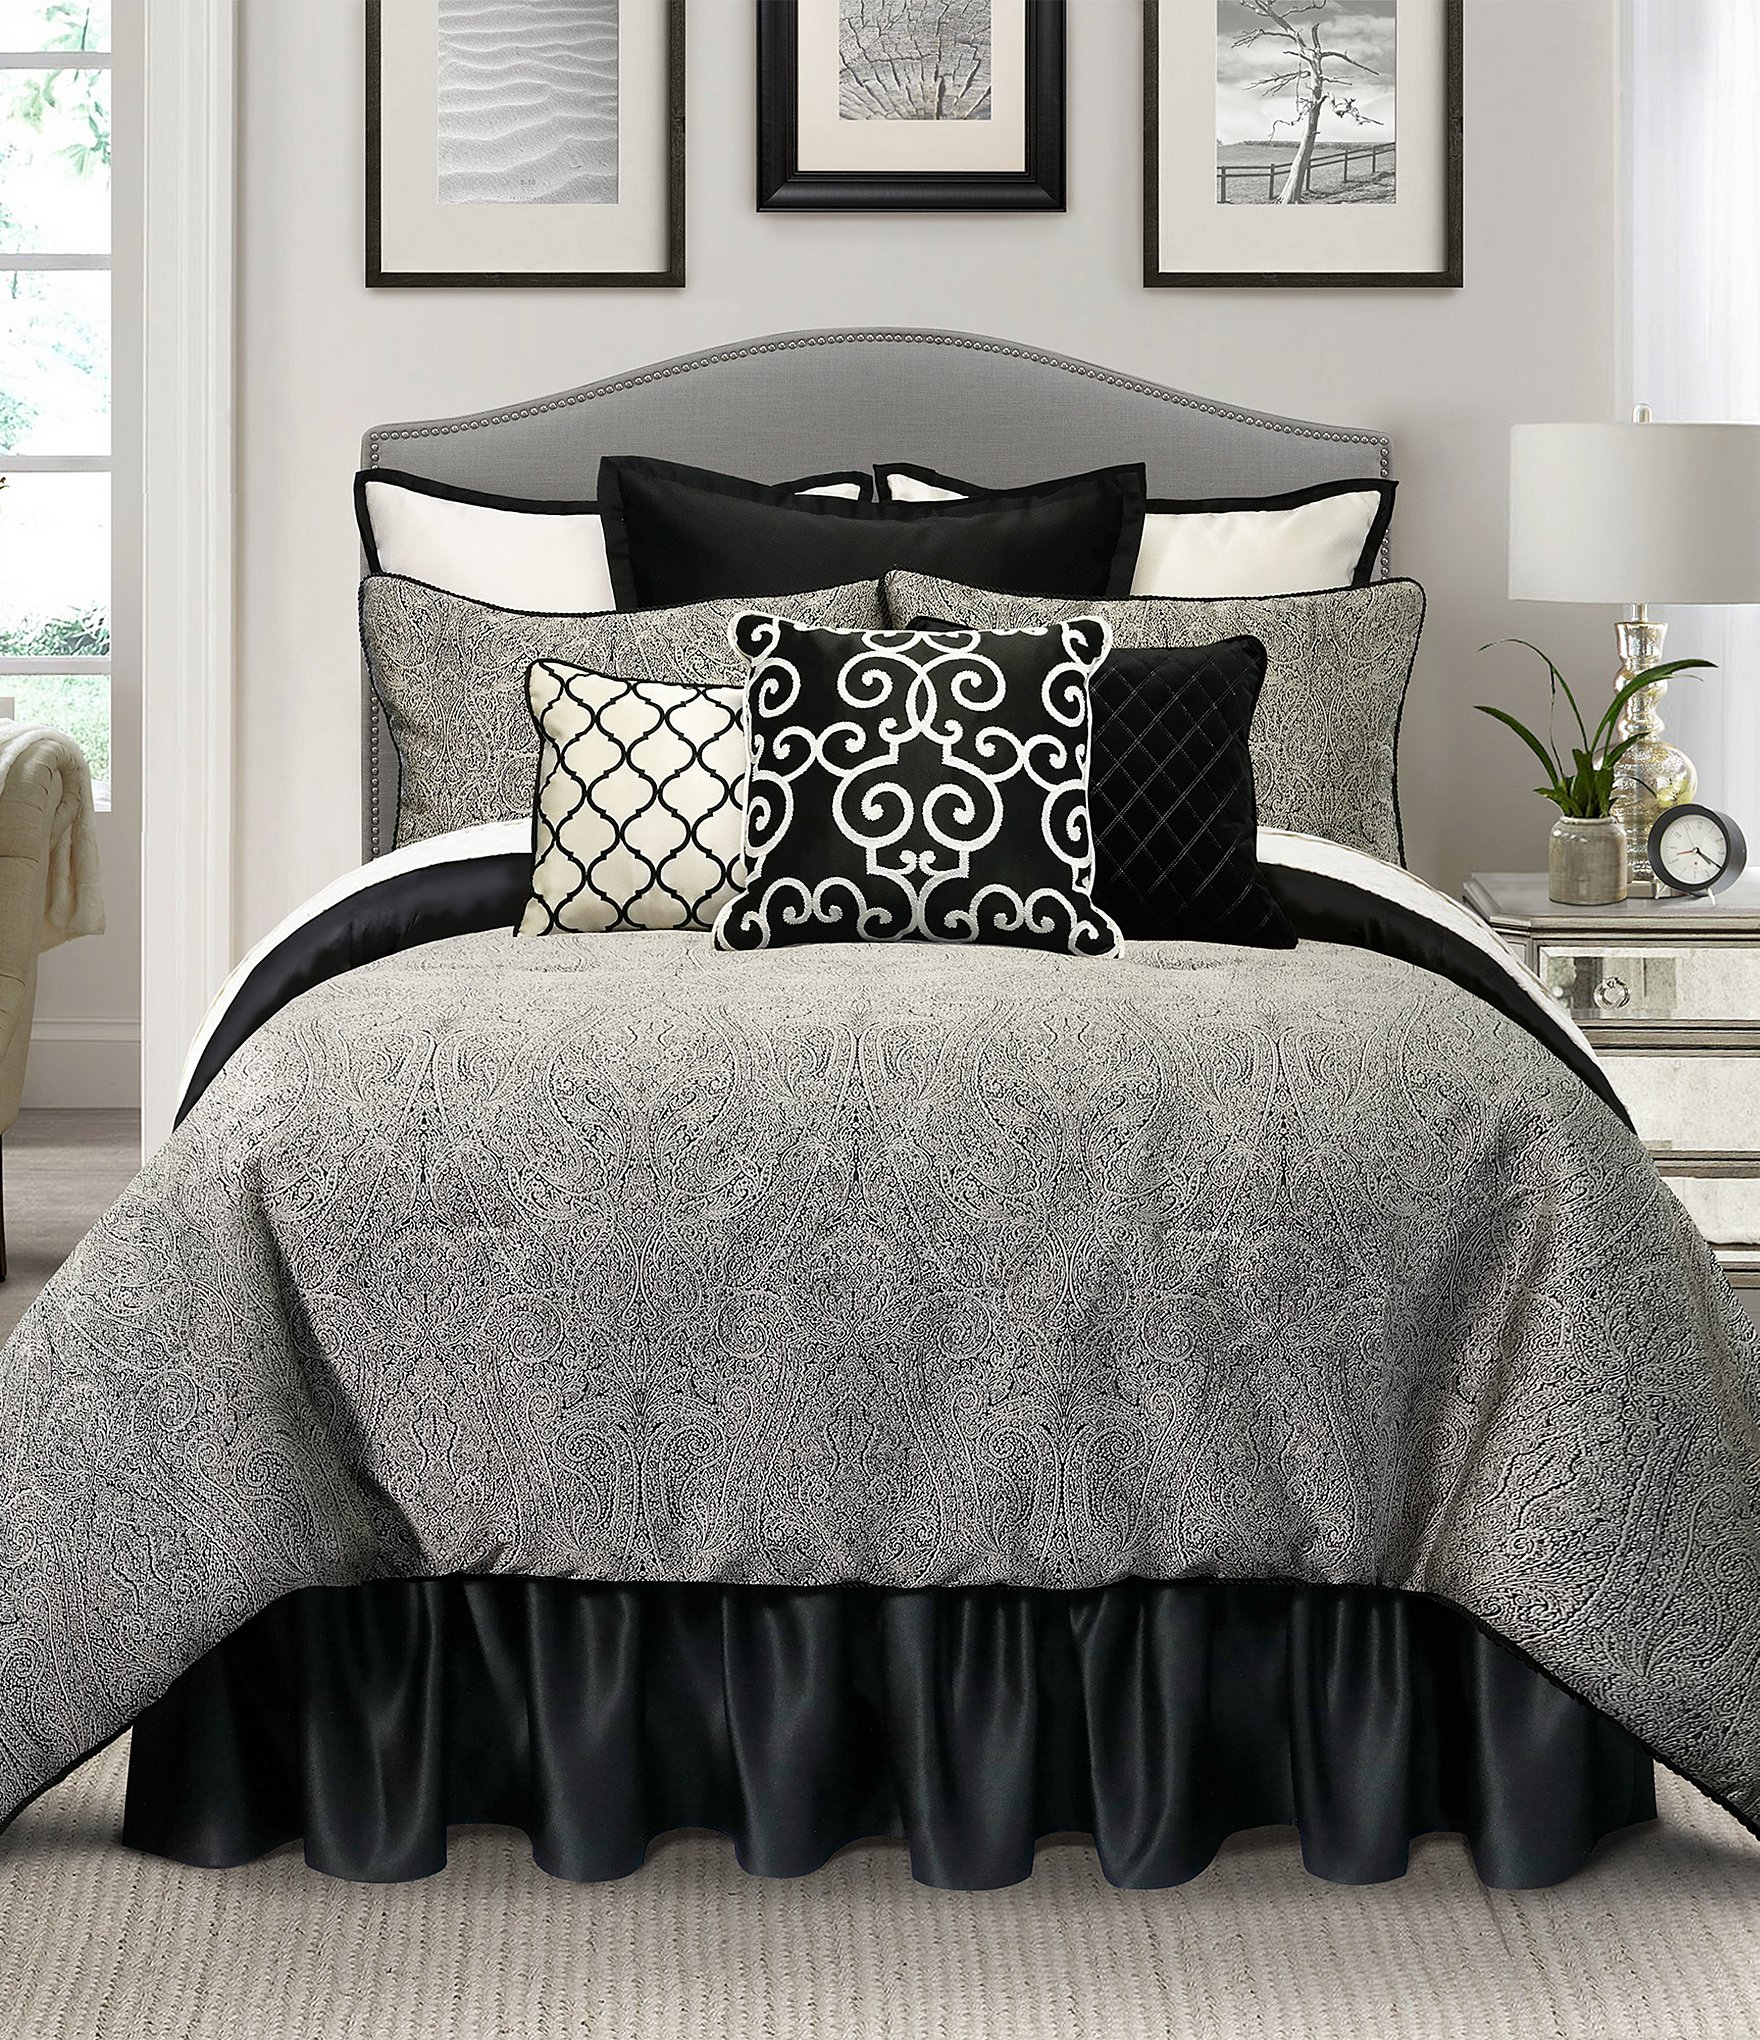 Bed sheet set black and white - Bed Sheet Set Black And White 15